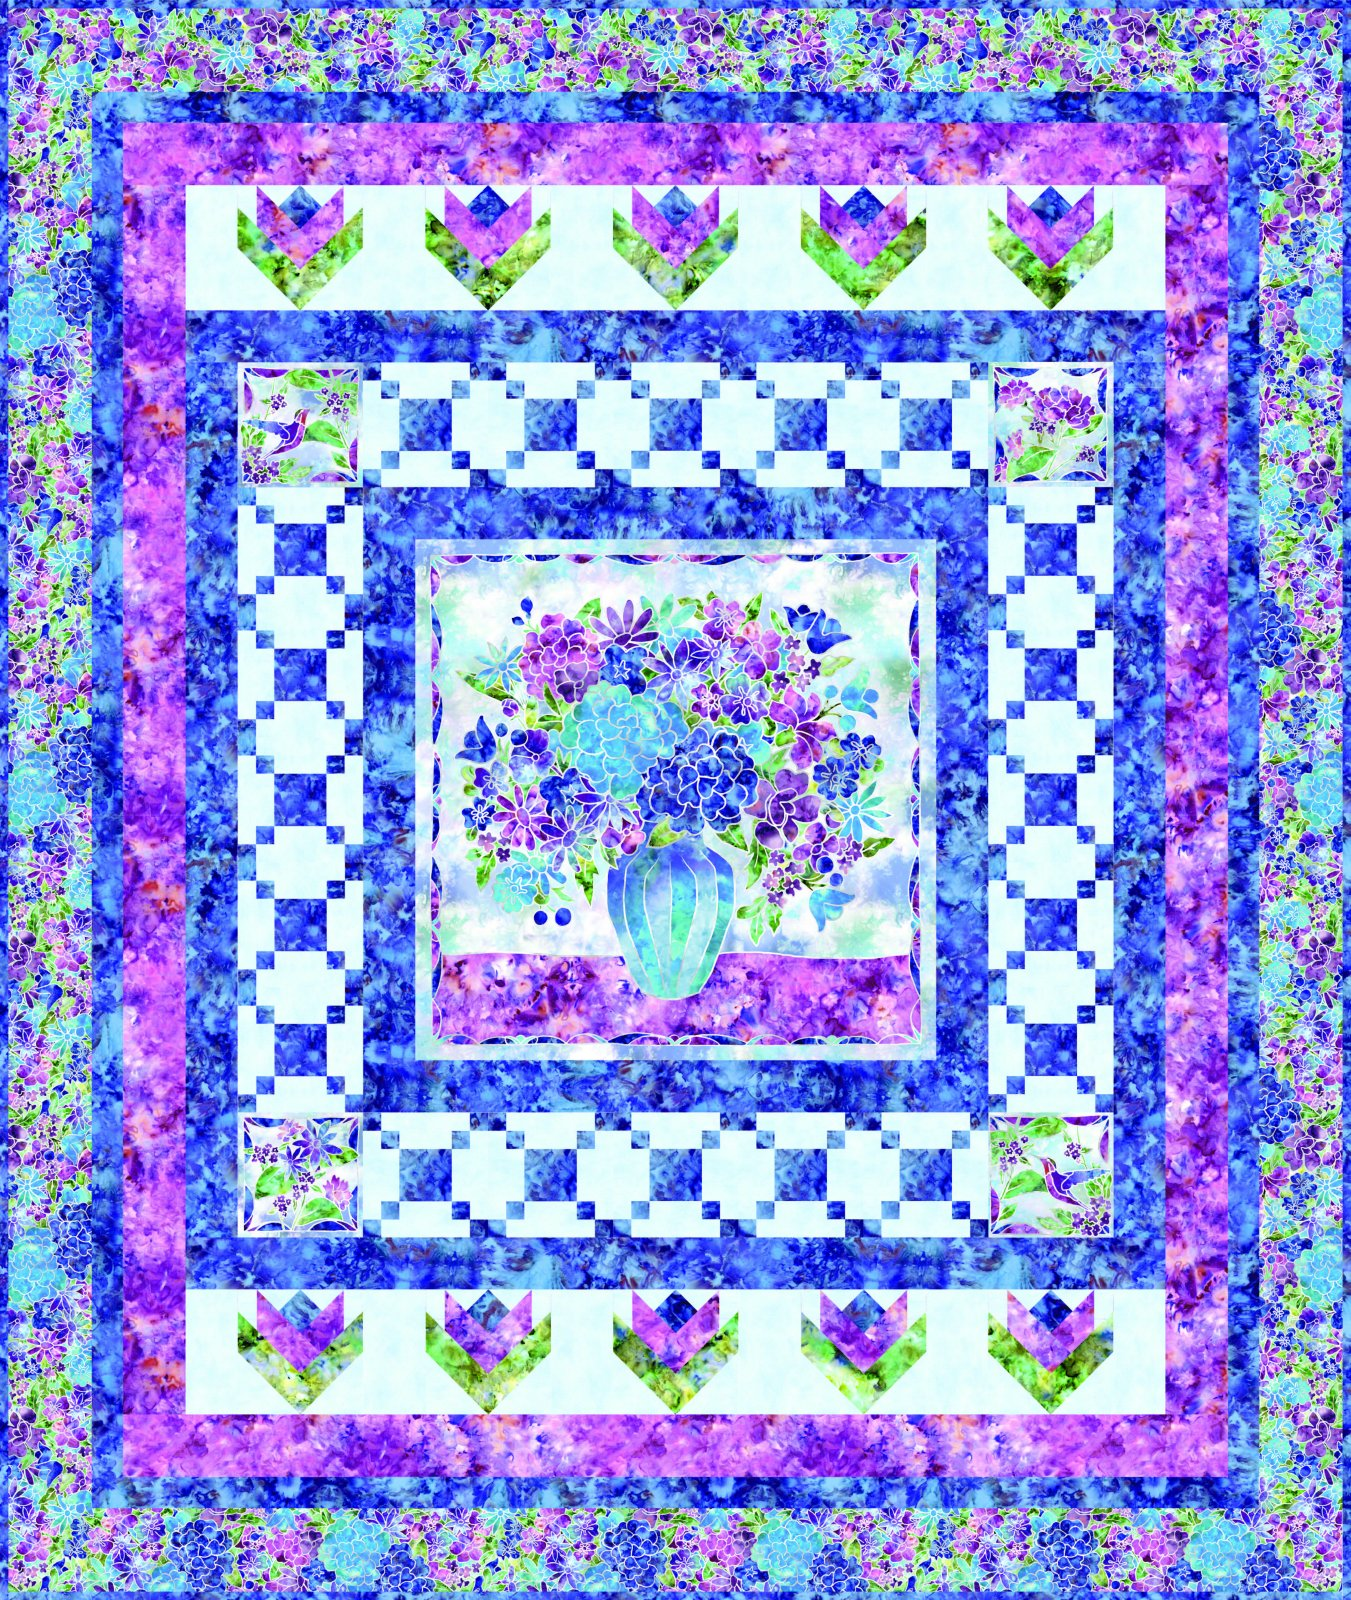 EESC-KITMASSPC - FIRE & ICE - SPRING INTO COLOR QUILT KIT 65 x 77 - ARRIVING IN OCTOBER 2021